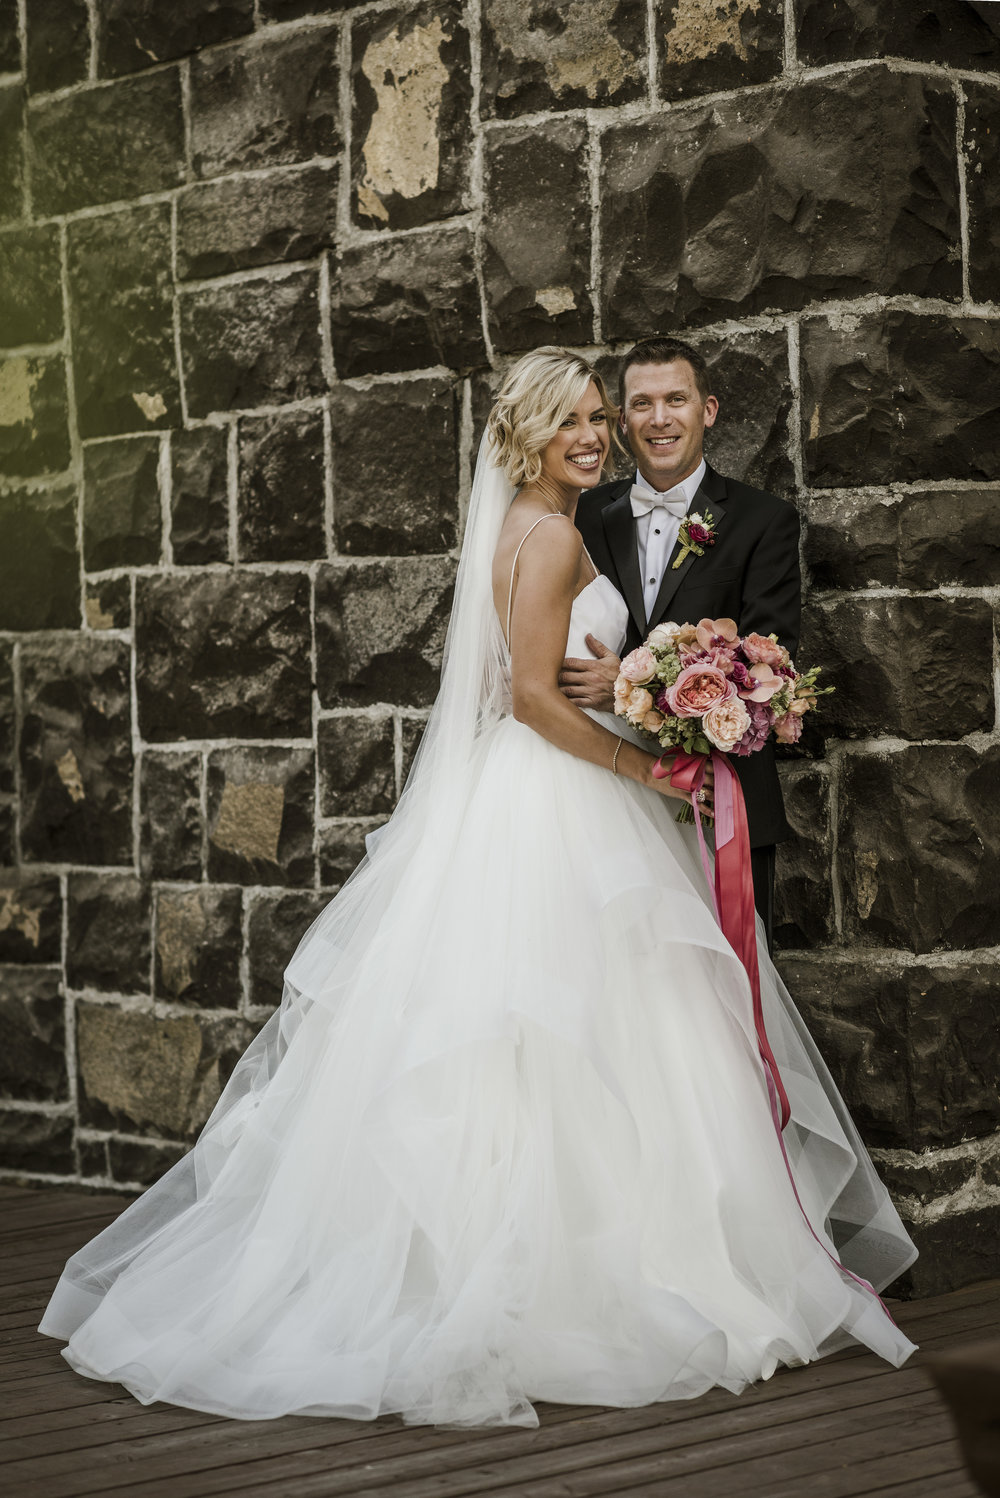 Bridalbliss.com | Portland Wedding | Oregon Event Planning and Design |  Kimberly Kay Photographer